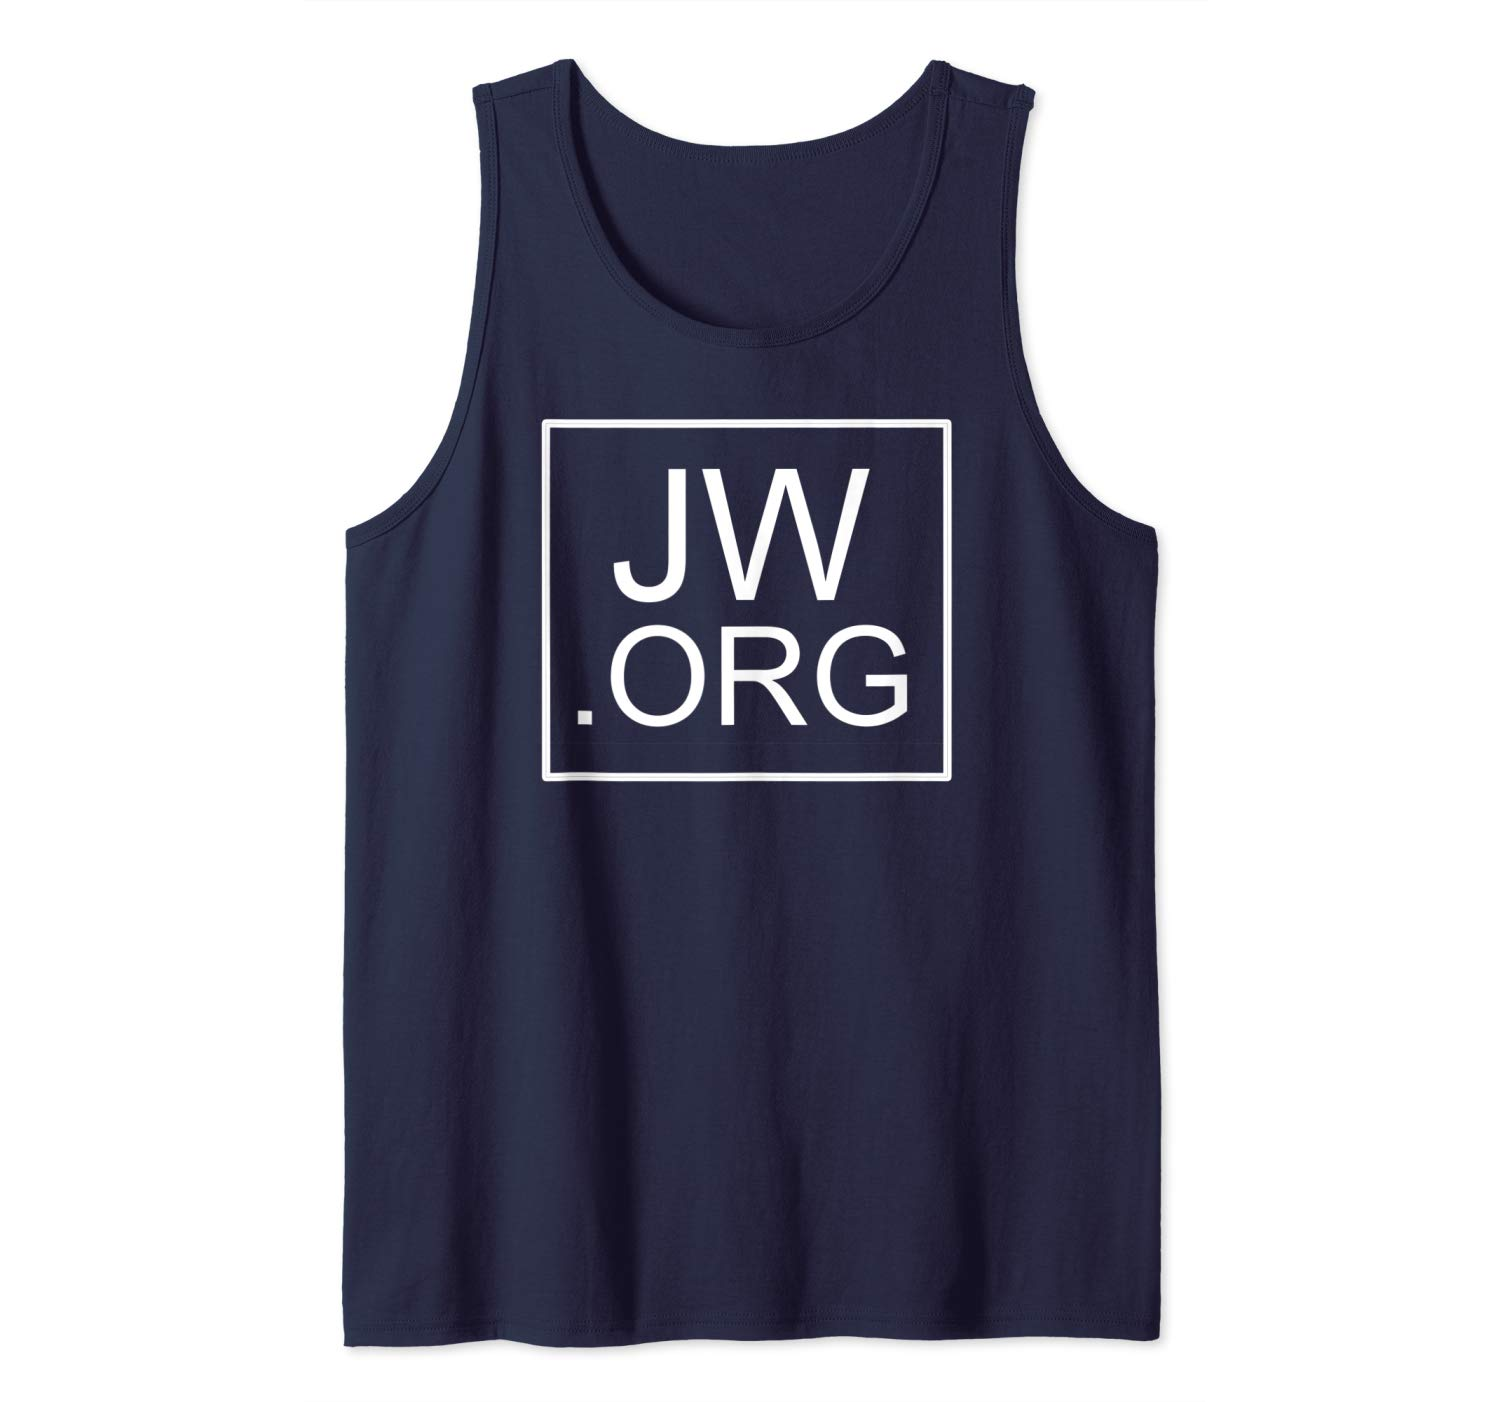 Amazon.com: Jehovah Witness Gift JW ORG Shirt for Witnessing Carts.